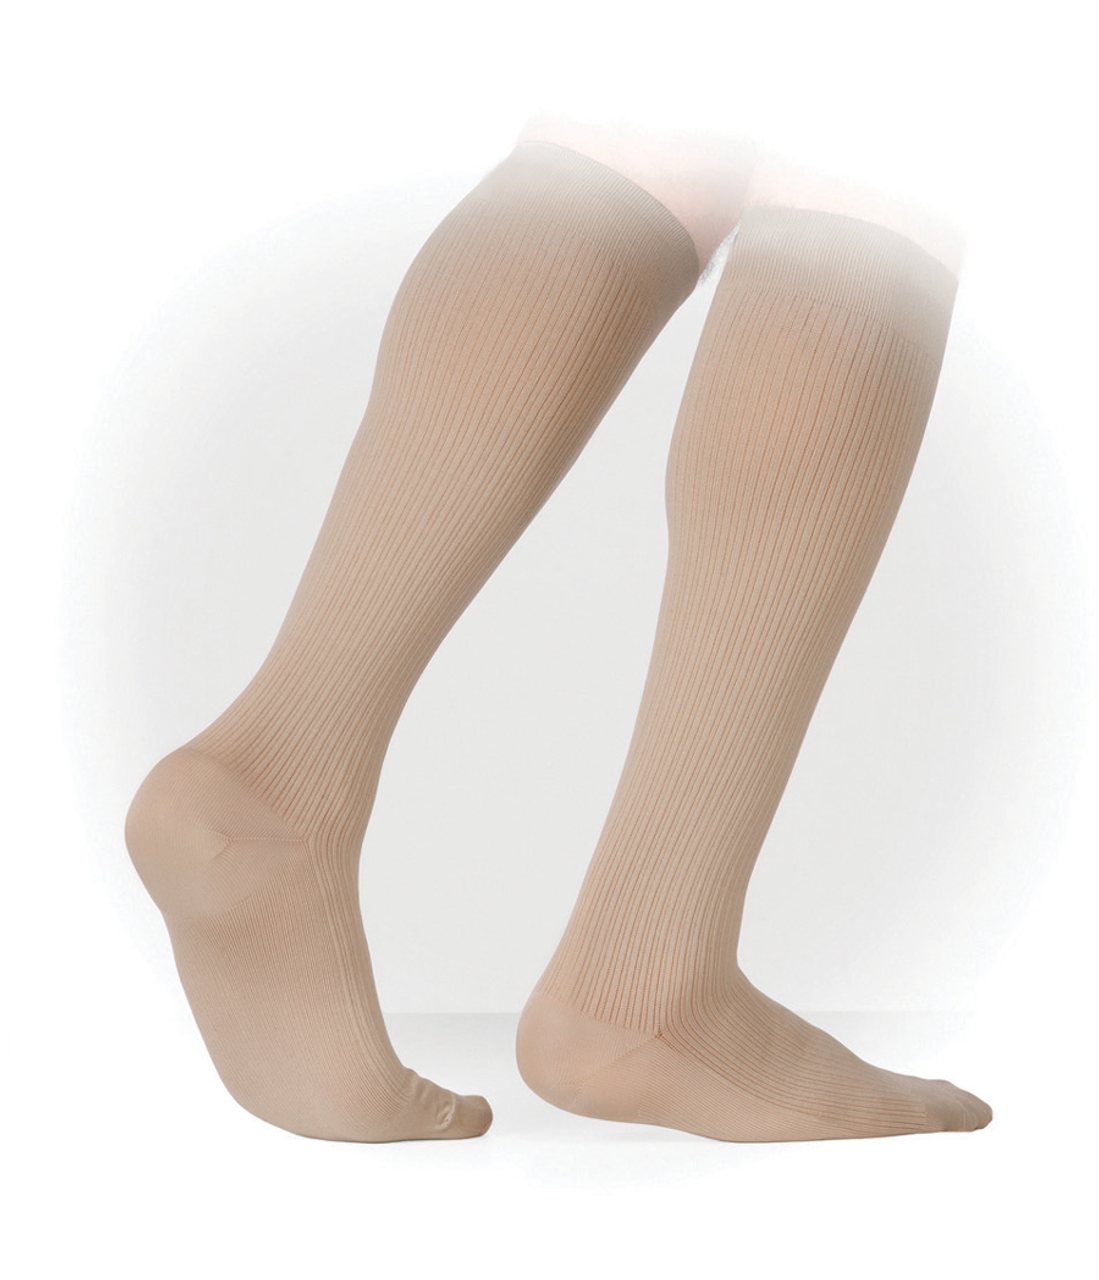 buy online bfec2 b0dd9 Genext Men s Business Ribbed Knee-High Stockings Compression (15-20 ...